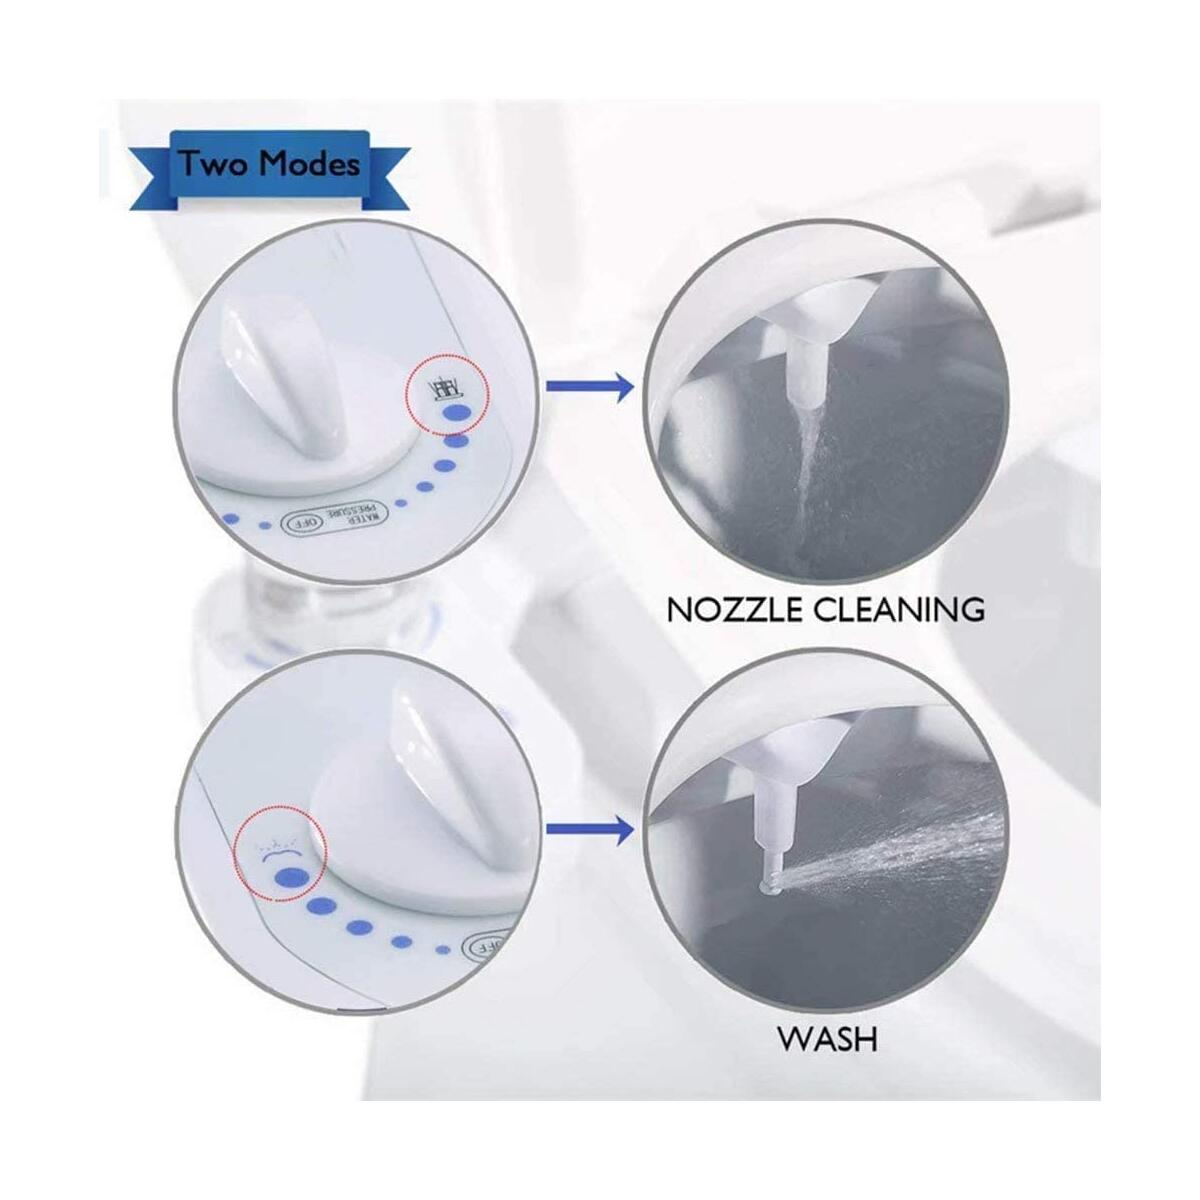 Home Toilet Seat Bidet Self Cleaning Single Nozzle Fresh Water Spray Non-Electric Mechanical Bidet Toilet Attachment for Personal Hygiene Easy to Install Save Toilet Paper